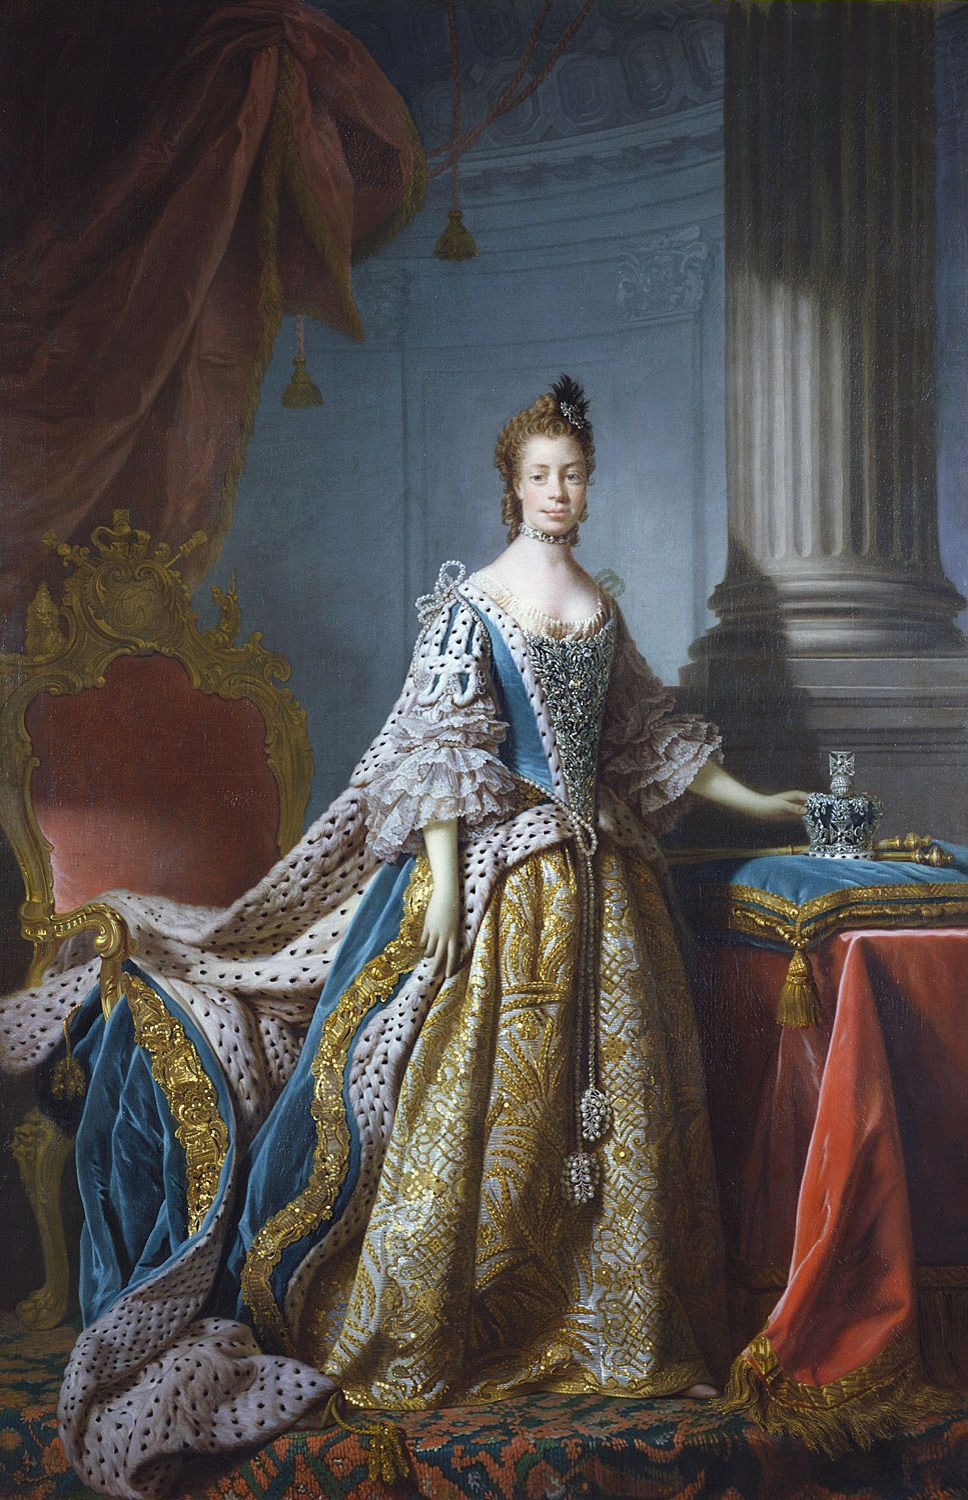 http://upload.wikimedia.org/wikipedia/commons/7/7c/Charlotte_of_Mecklenburg-Strelitz_-_1760-1800.jpg